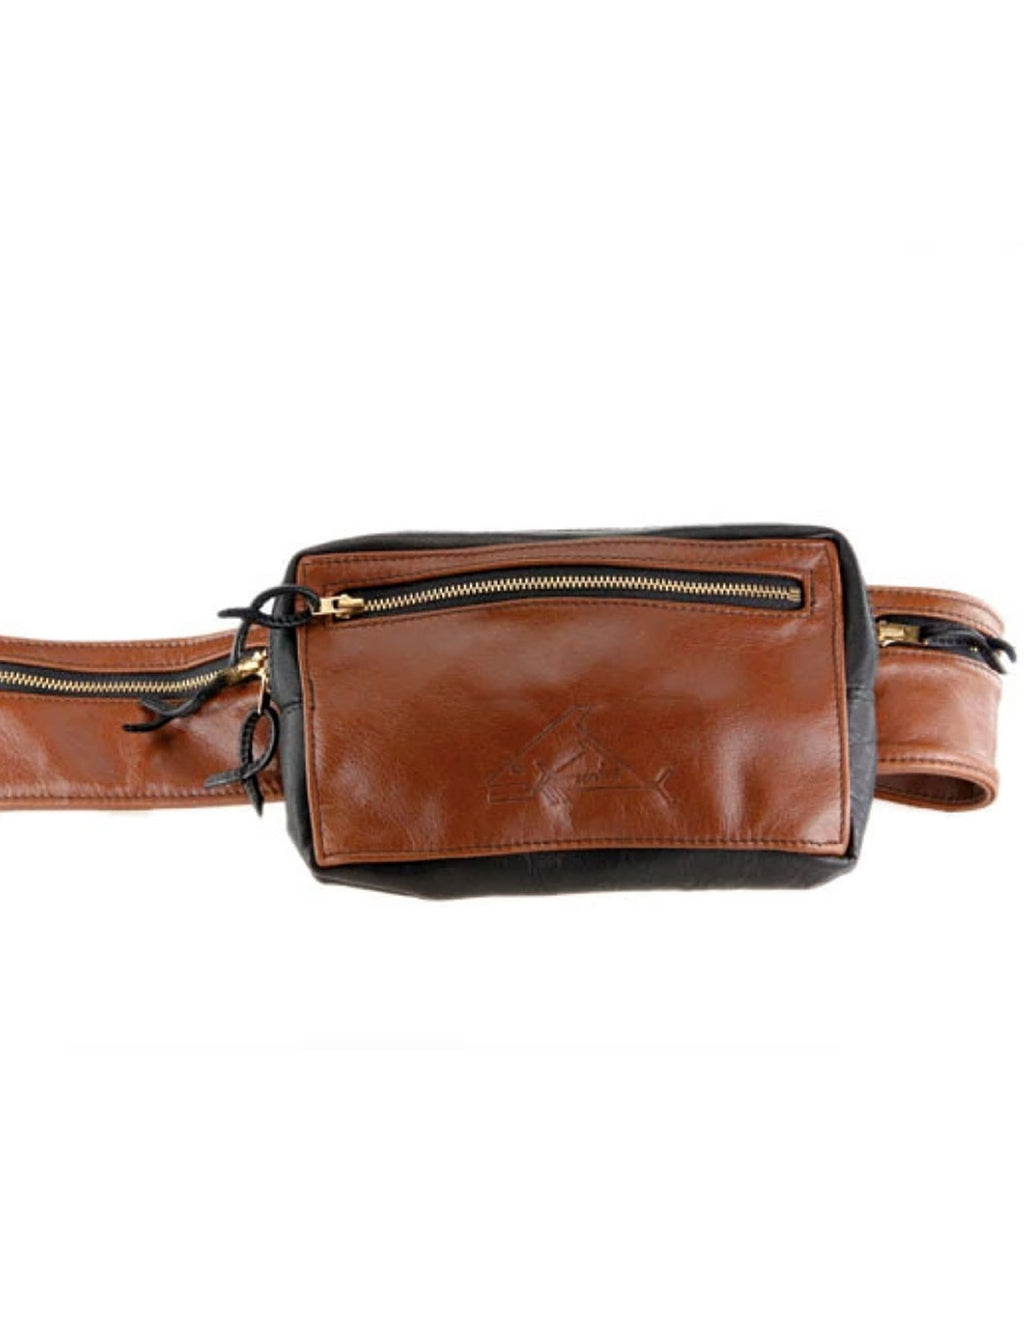 Money Belt - Indian Summer's designer leather purses